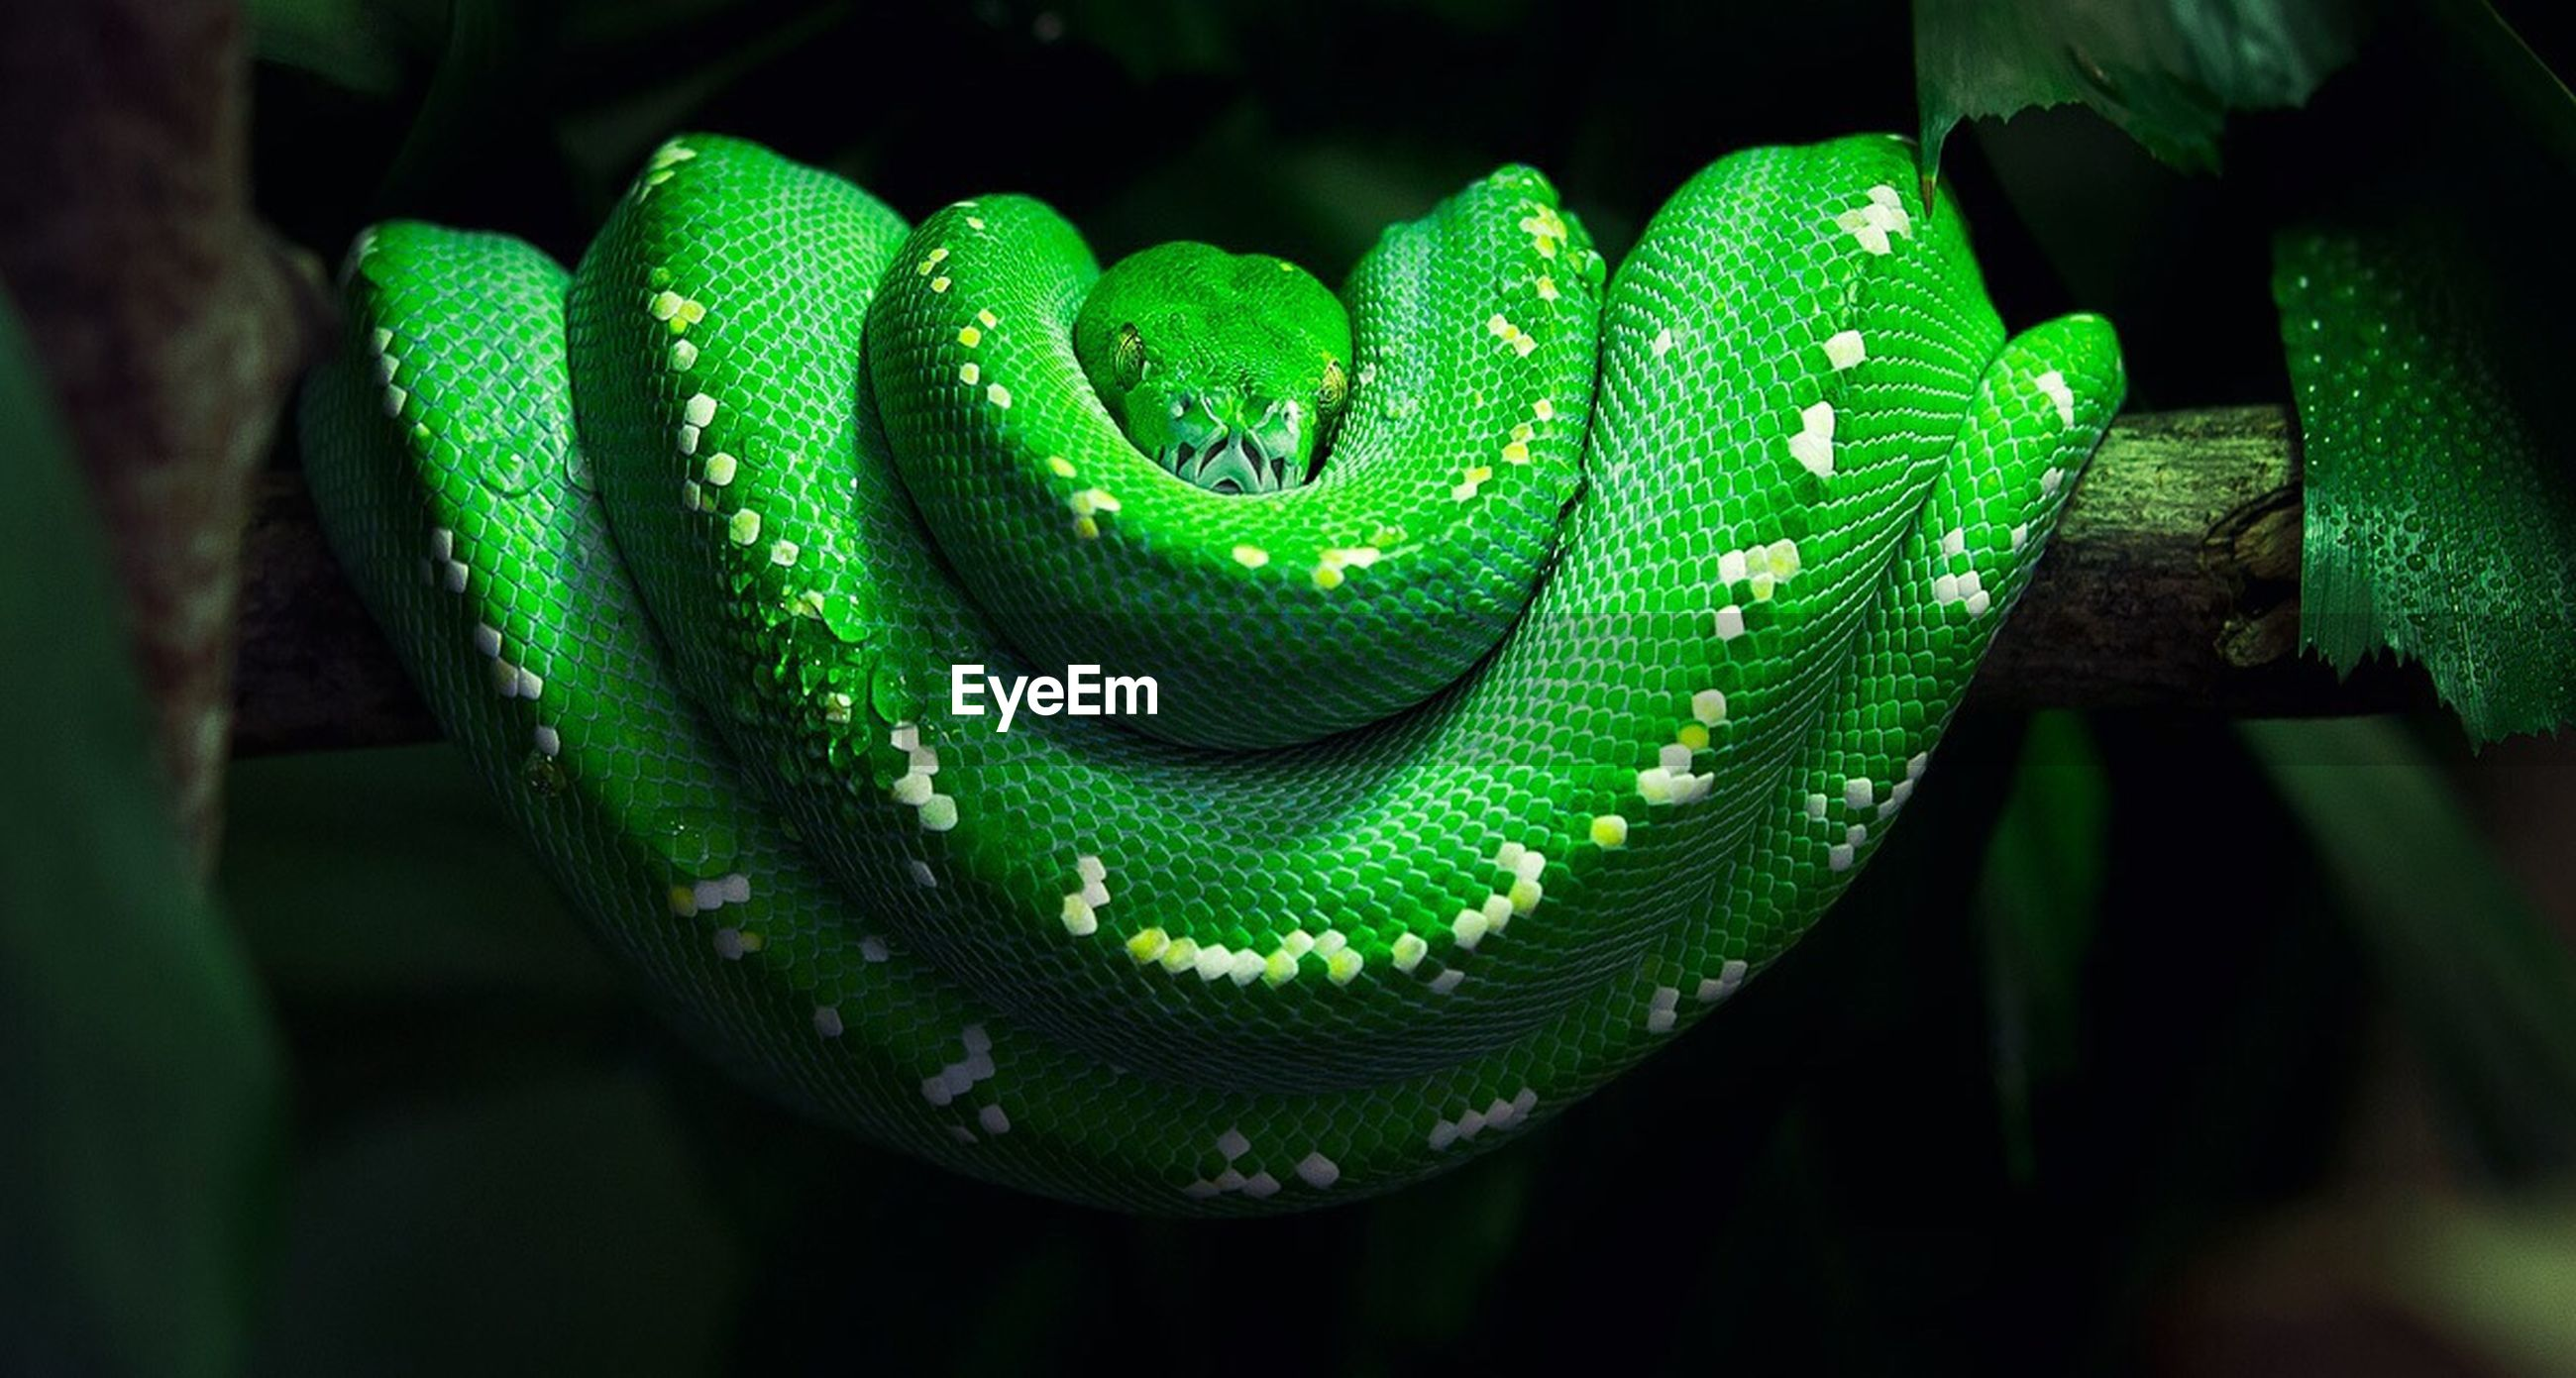 Close-up of a snake against black background